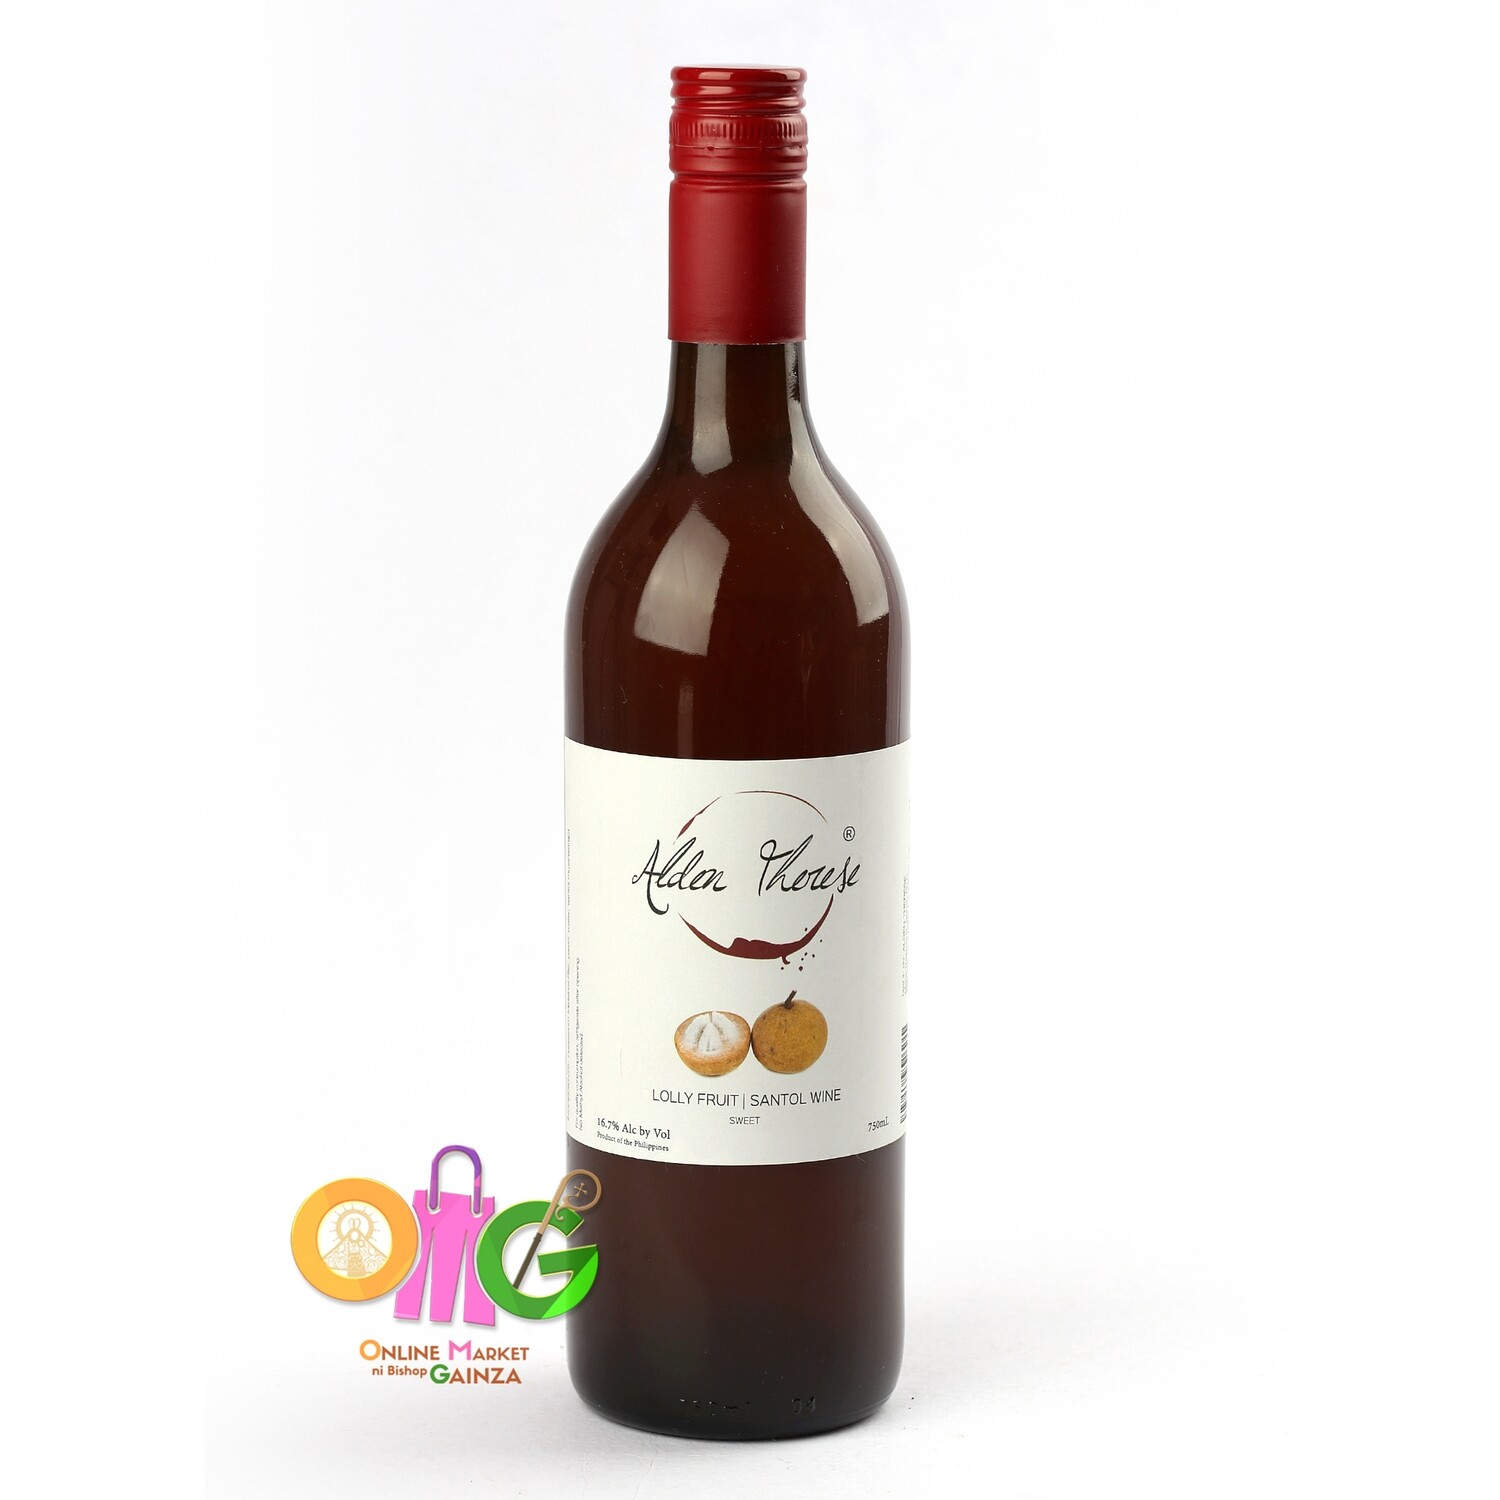 Alden Therese - Lolly Fruit / Santol Wine